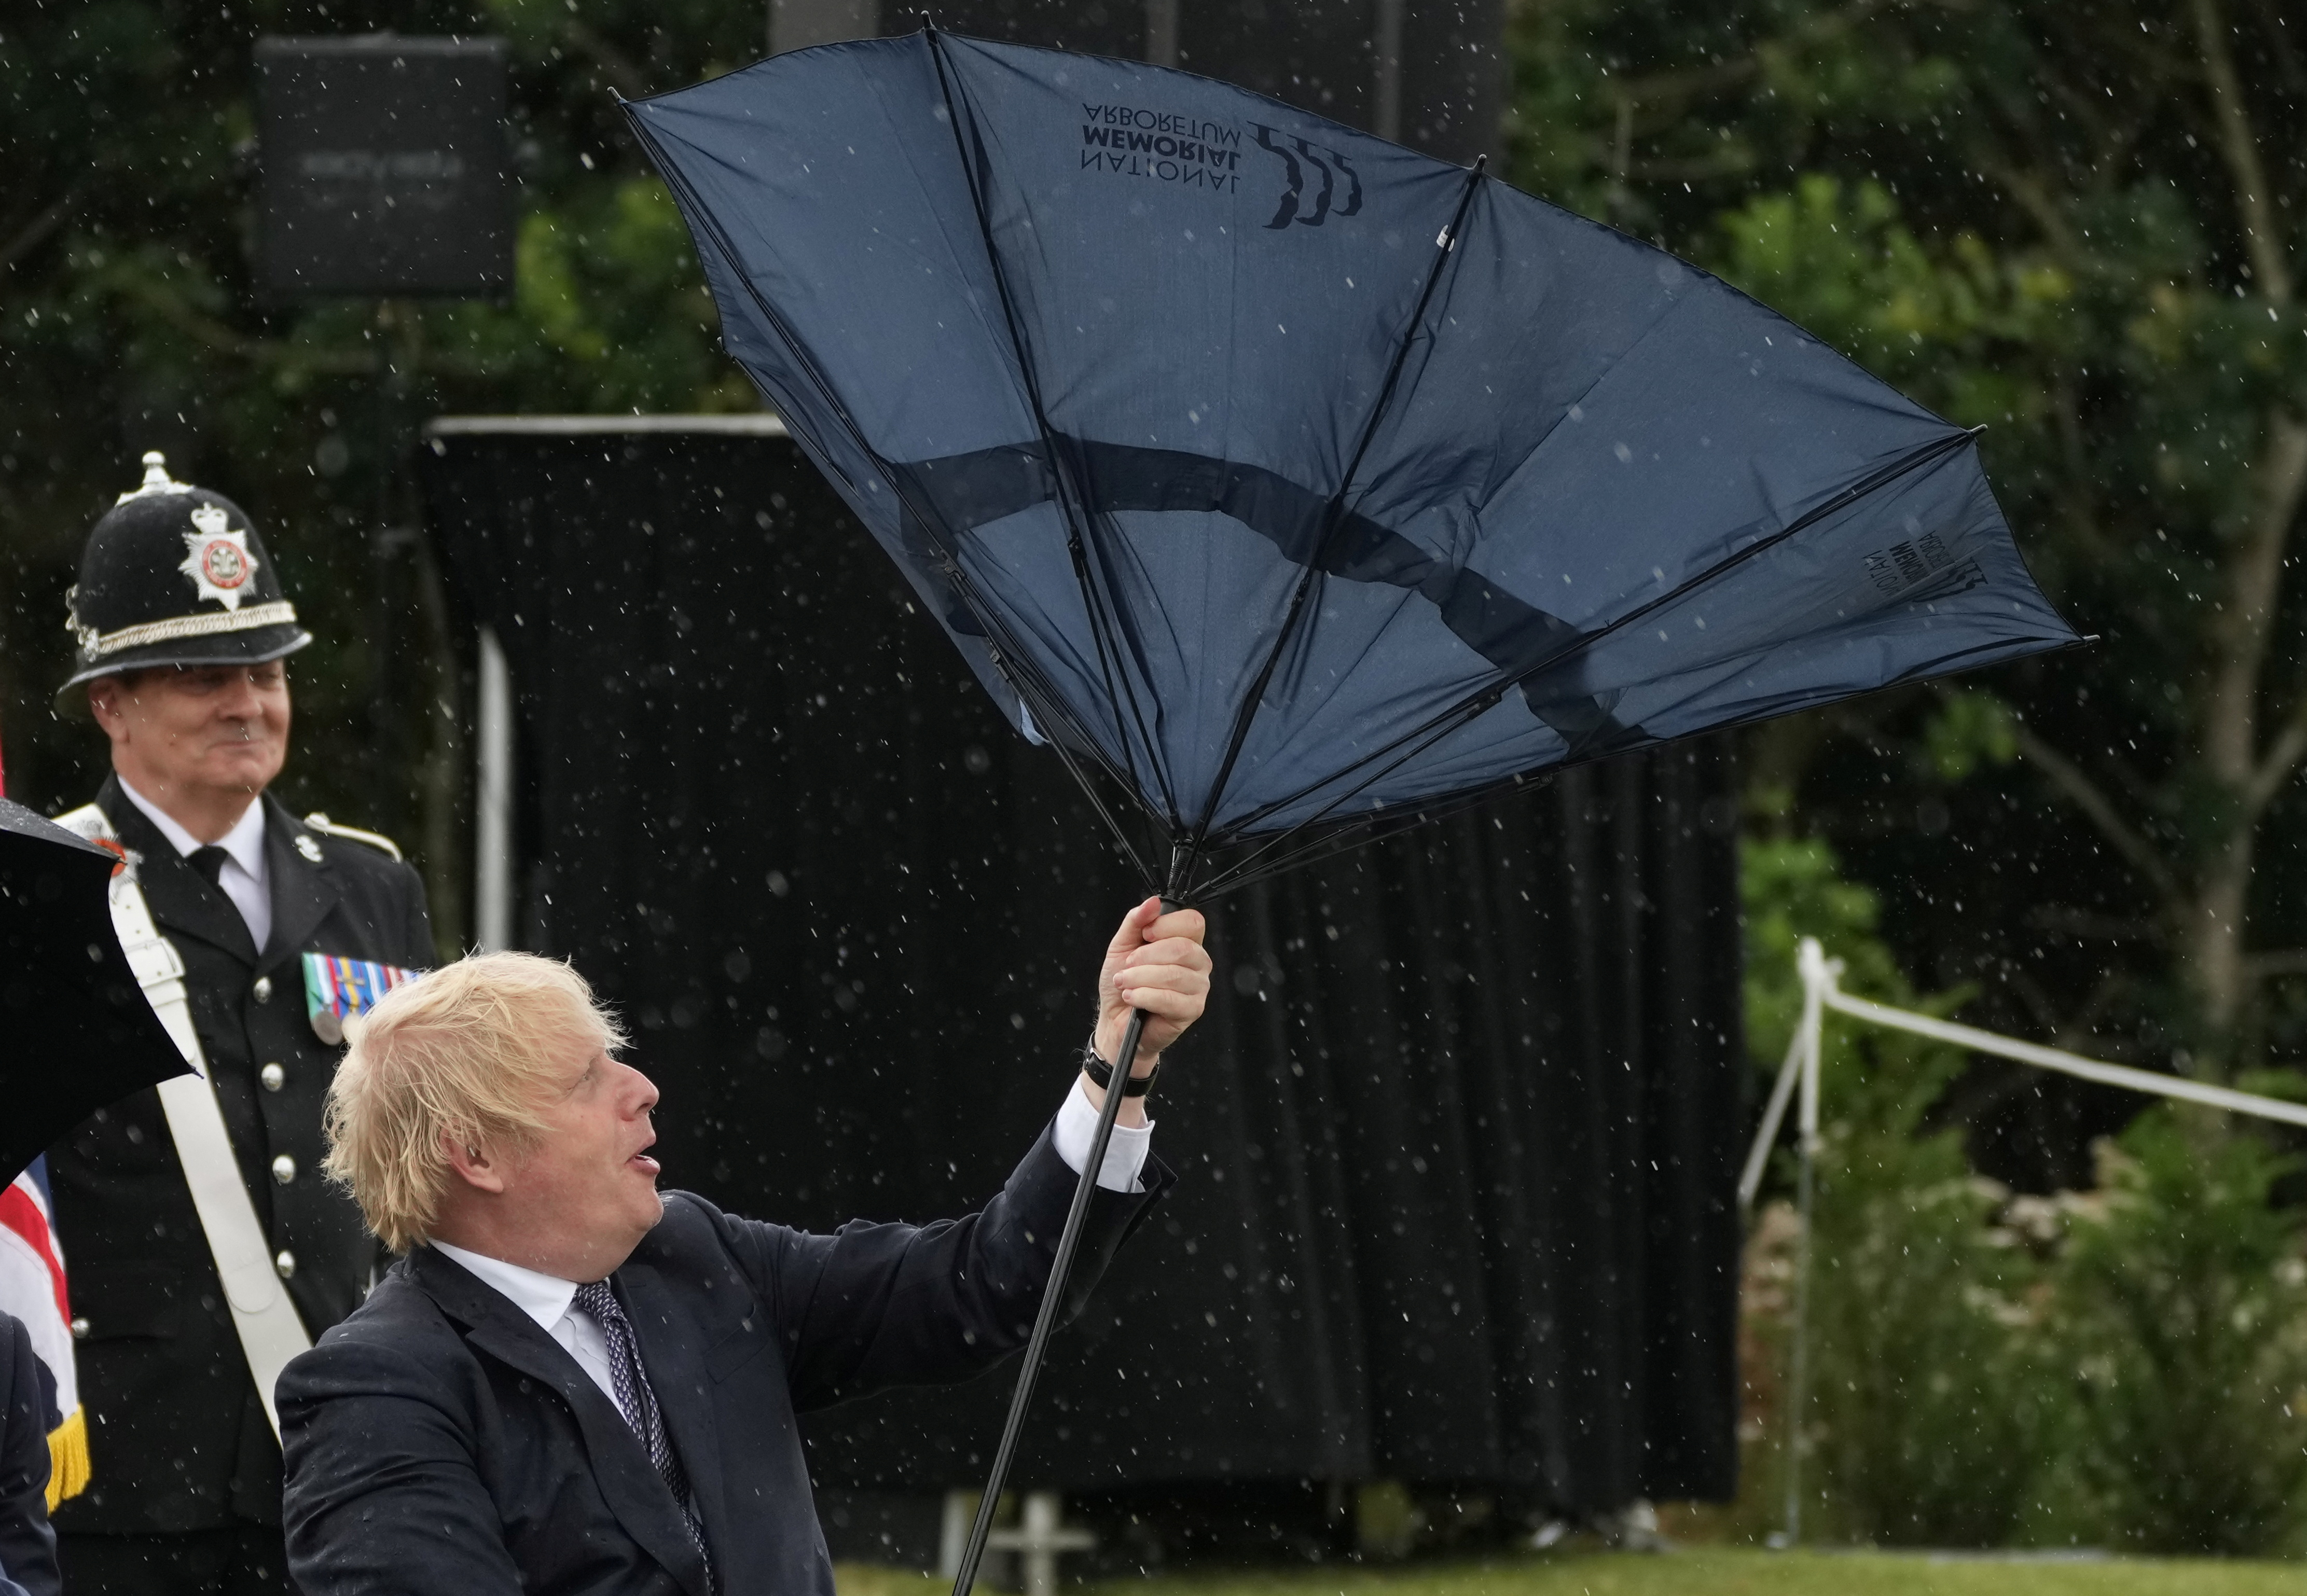 Britain's Prime Minister Boris Johnson struggles with an umbrella during a visit to the National Memorial Arboretum at Alrewas, Staffordshire, Britain July 28, 2021. Christopher Furlong/Pool via REUTERS